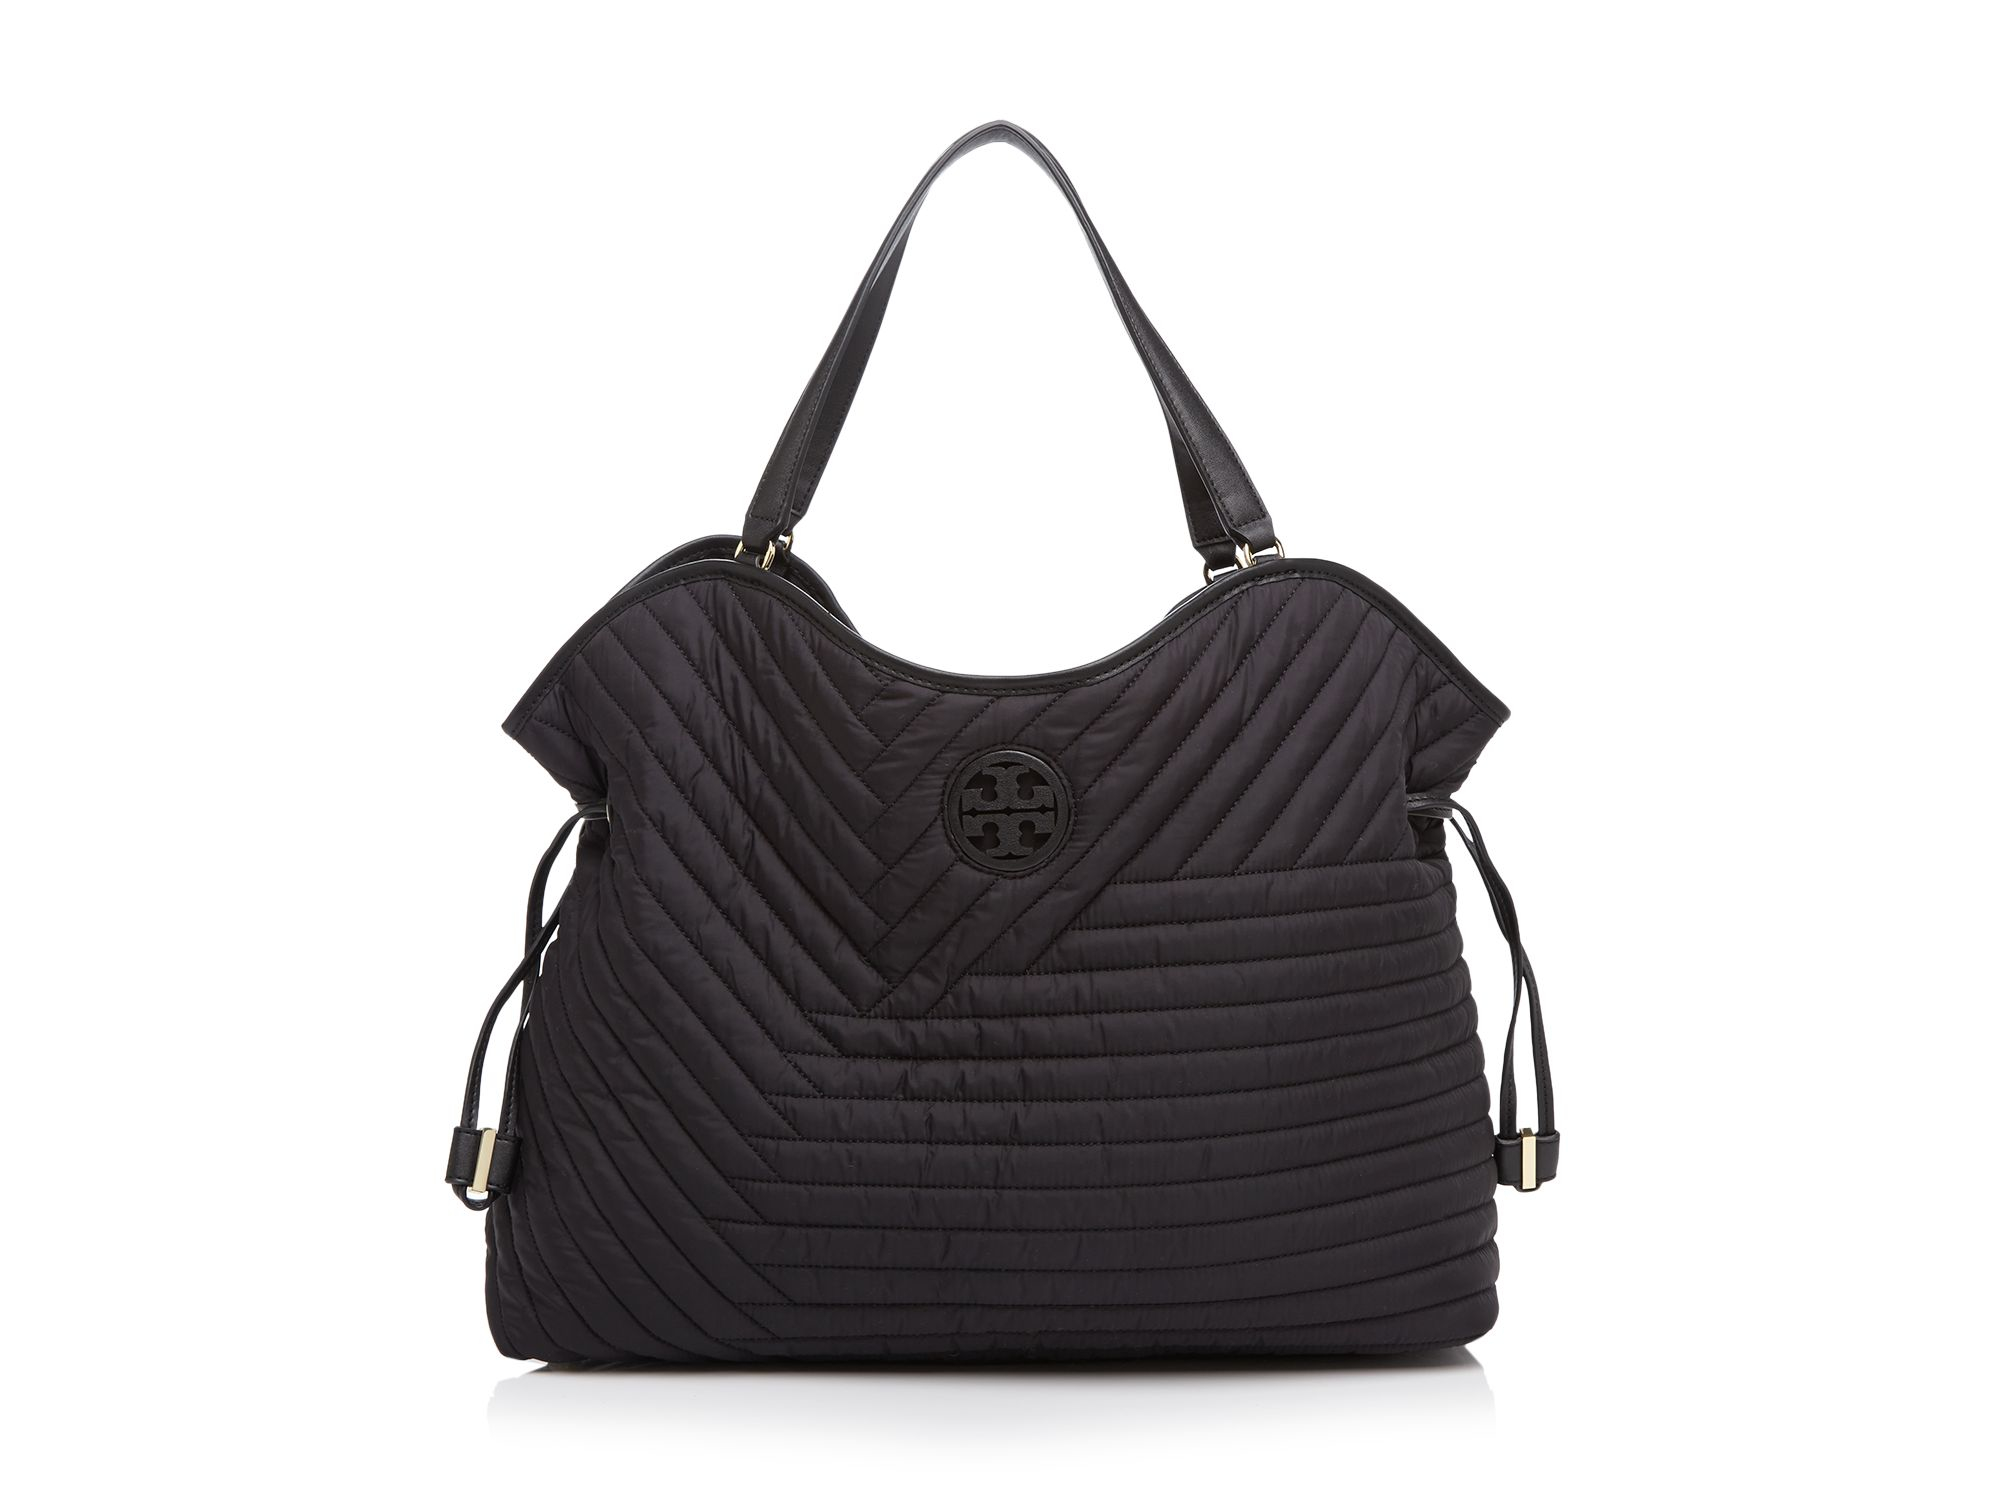 Tory Burch Quilted Nylon Slouchy Tote In Black Lyst